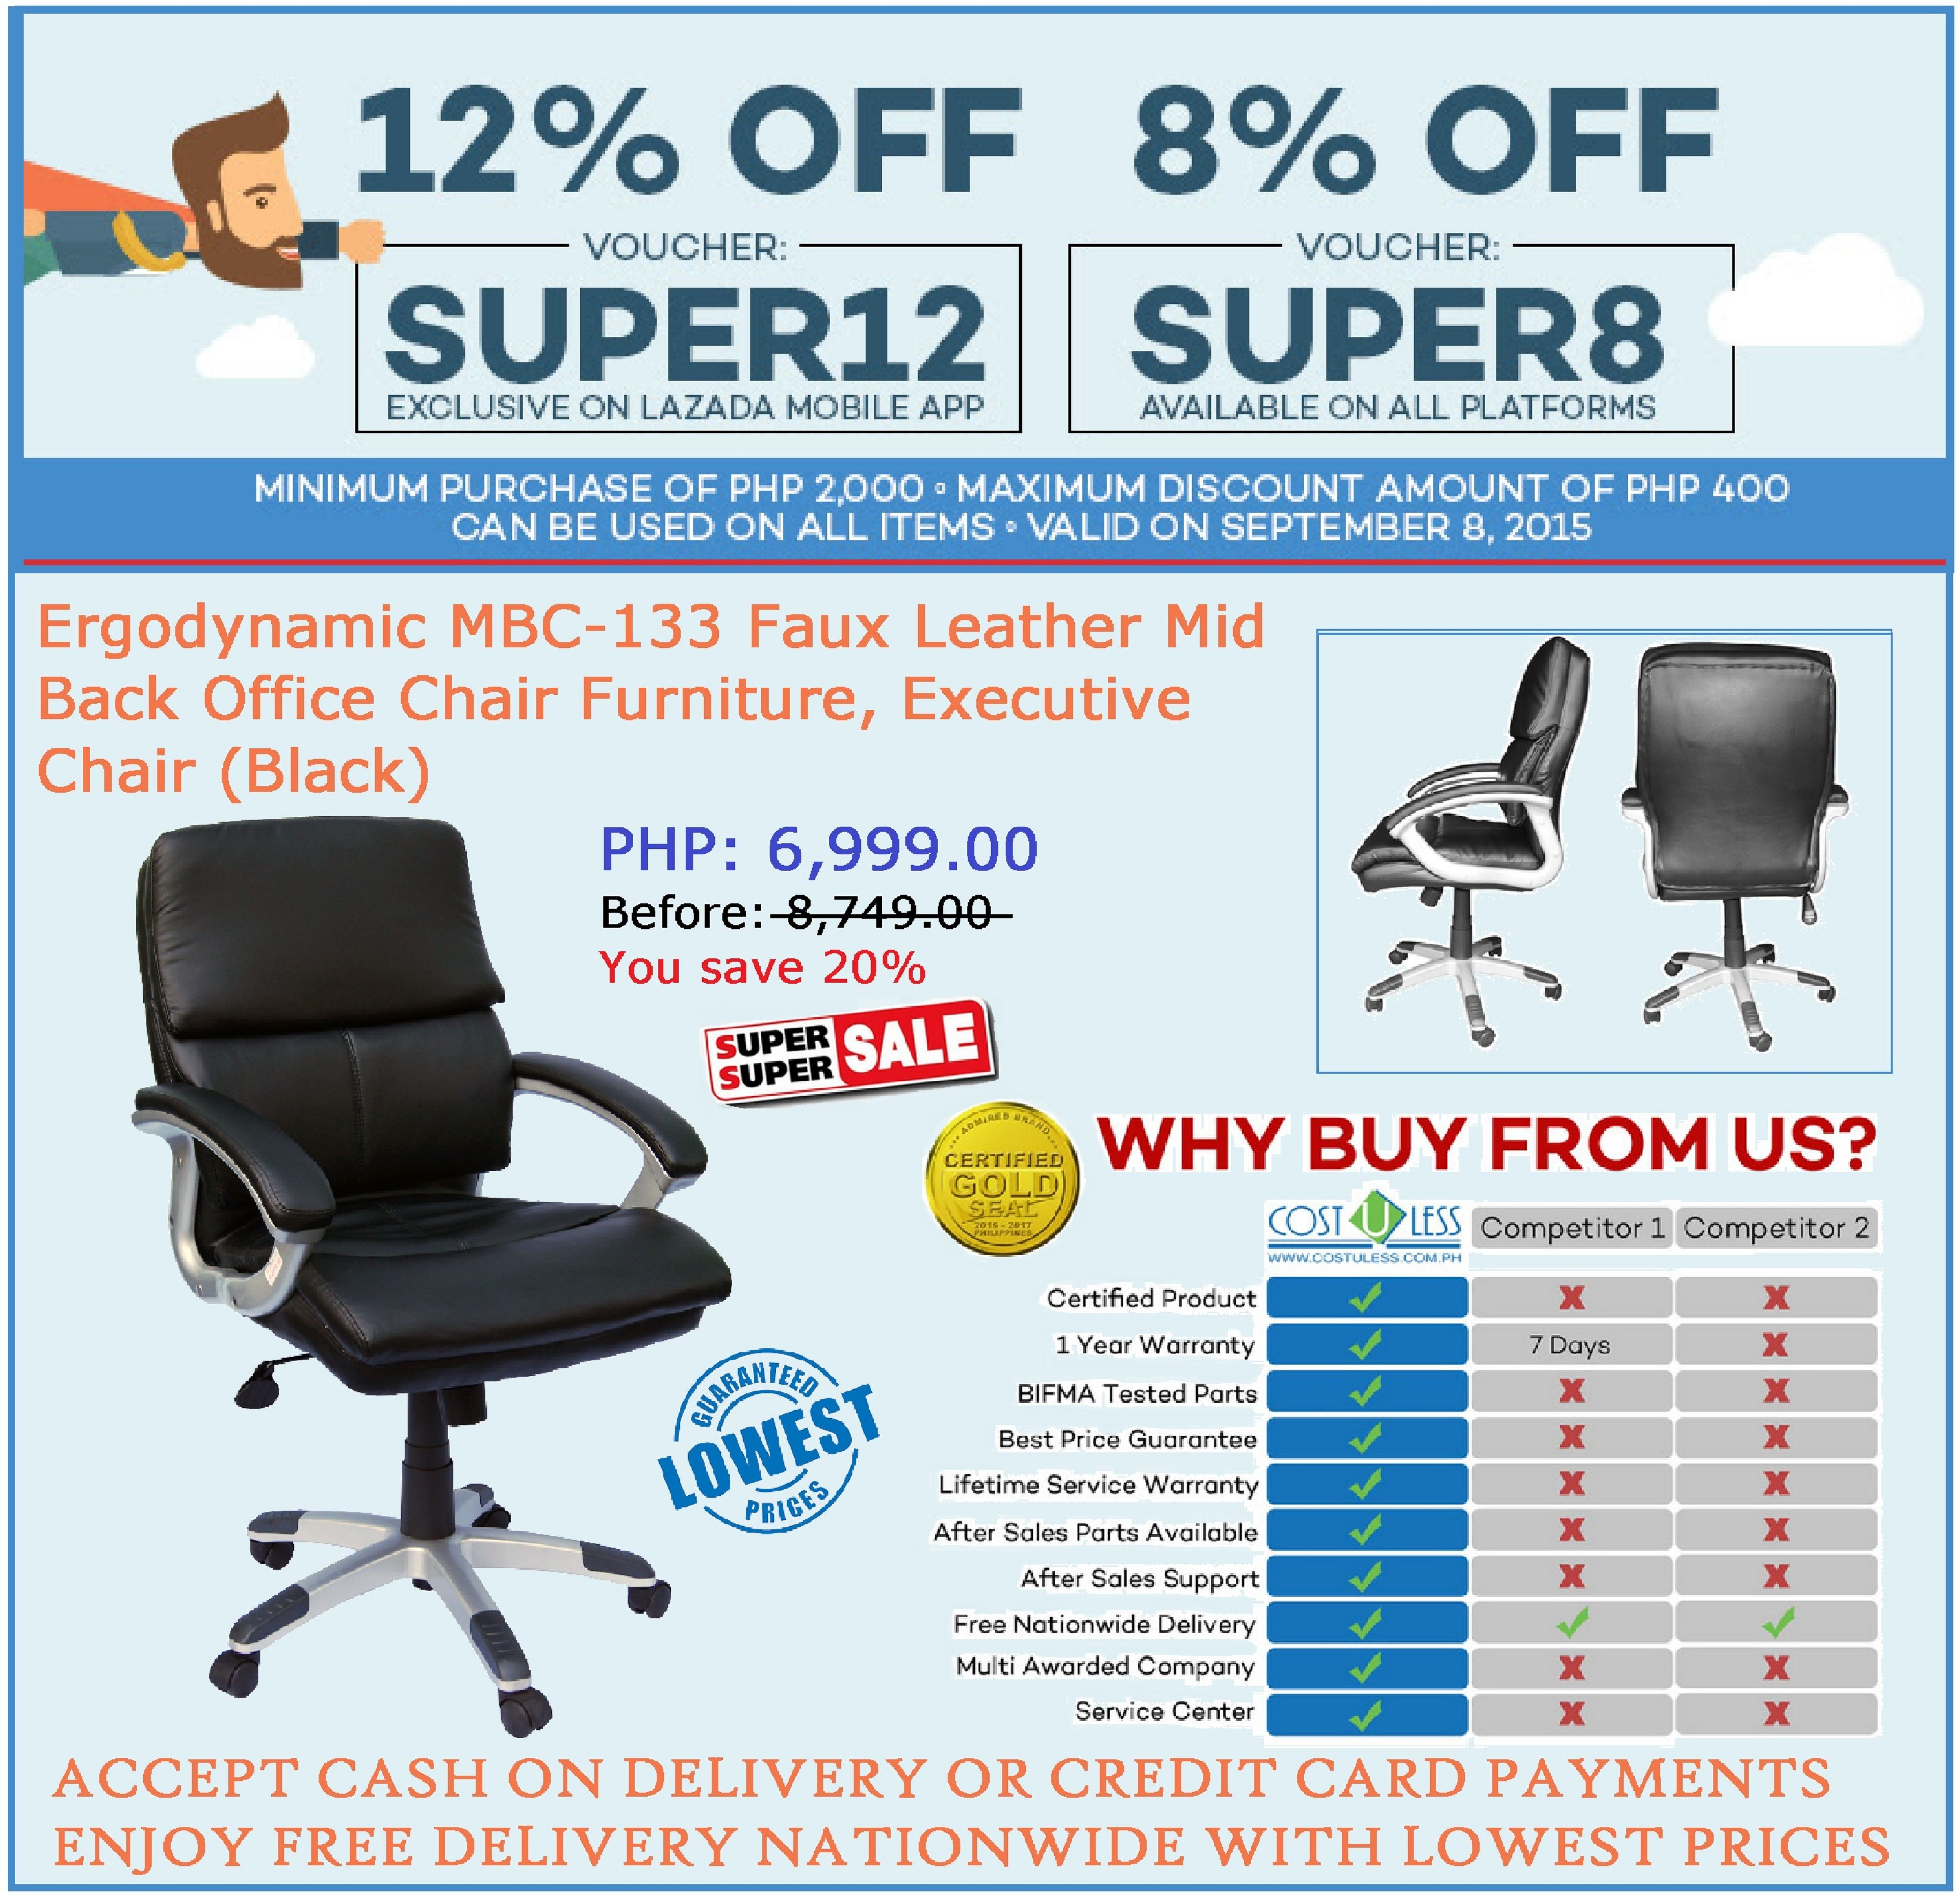 Office Furniture Lazada S Super September Promo Save 8 Up To 12 On Erynamic Mbc 133 Chair Use Voucher Code Super8 Available